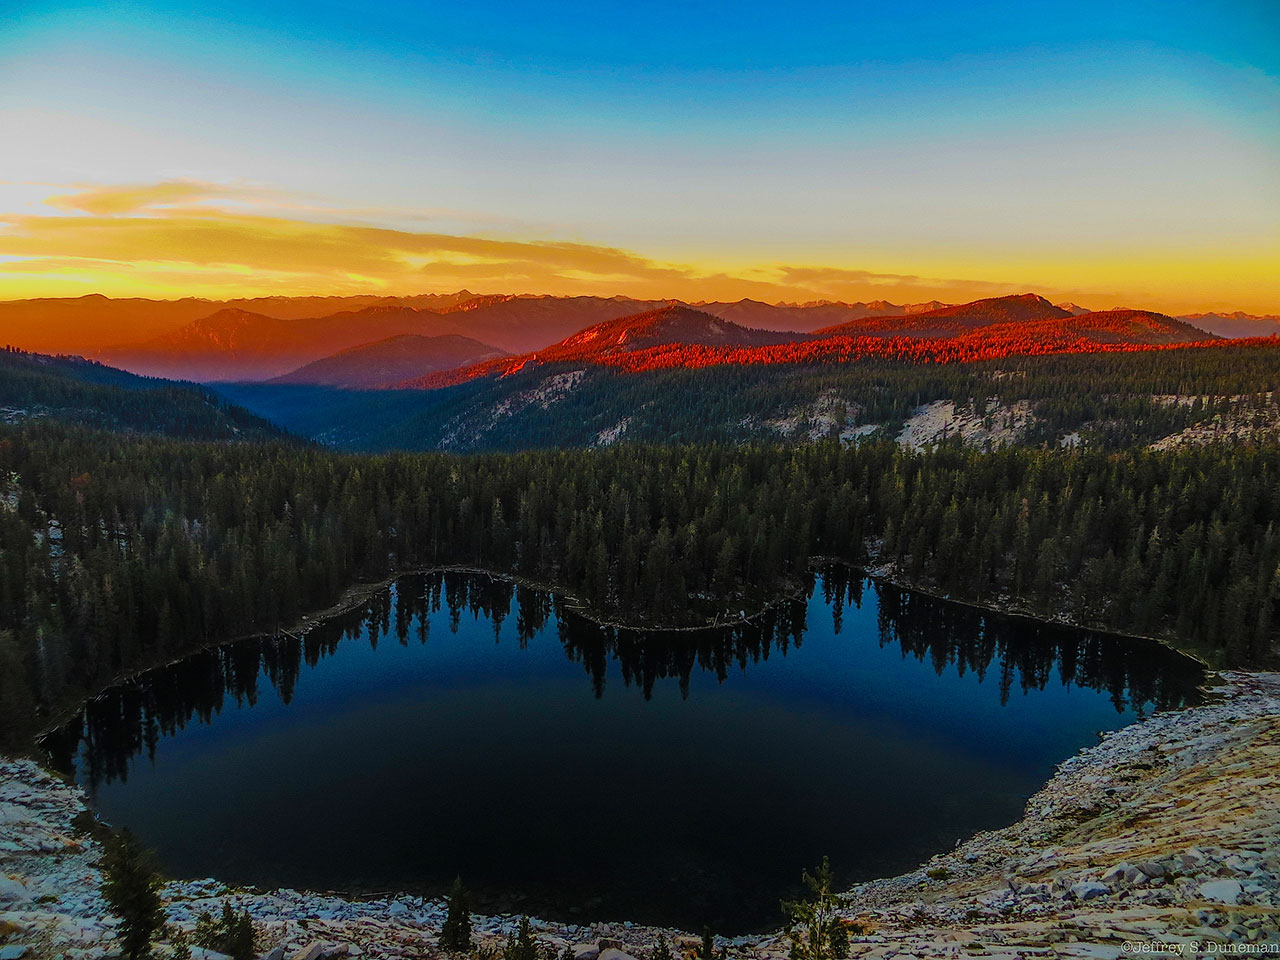 Sunset over mountains and a lake